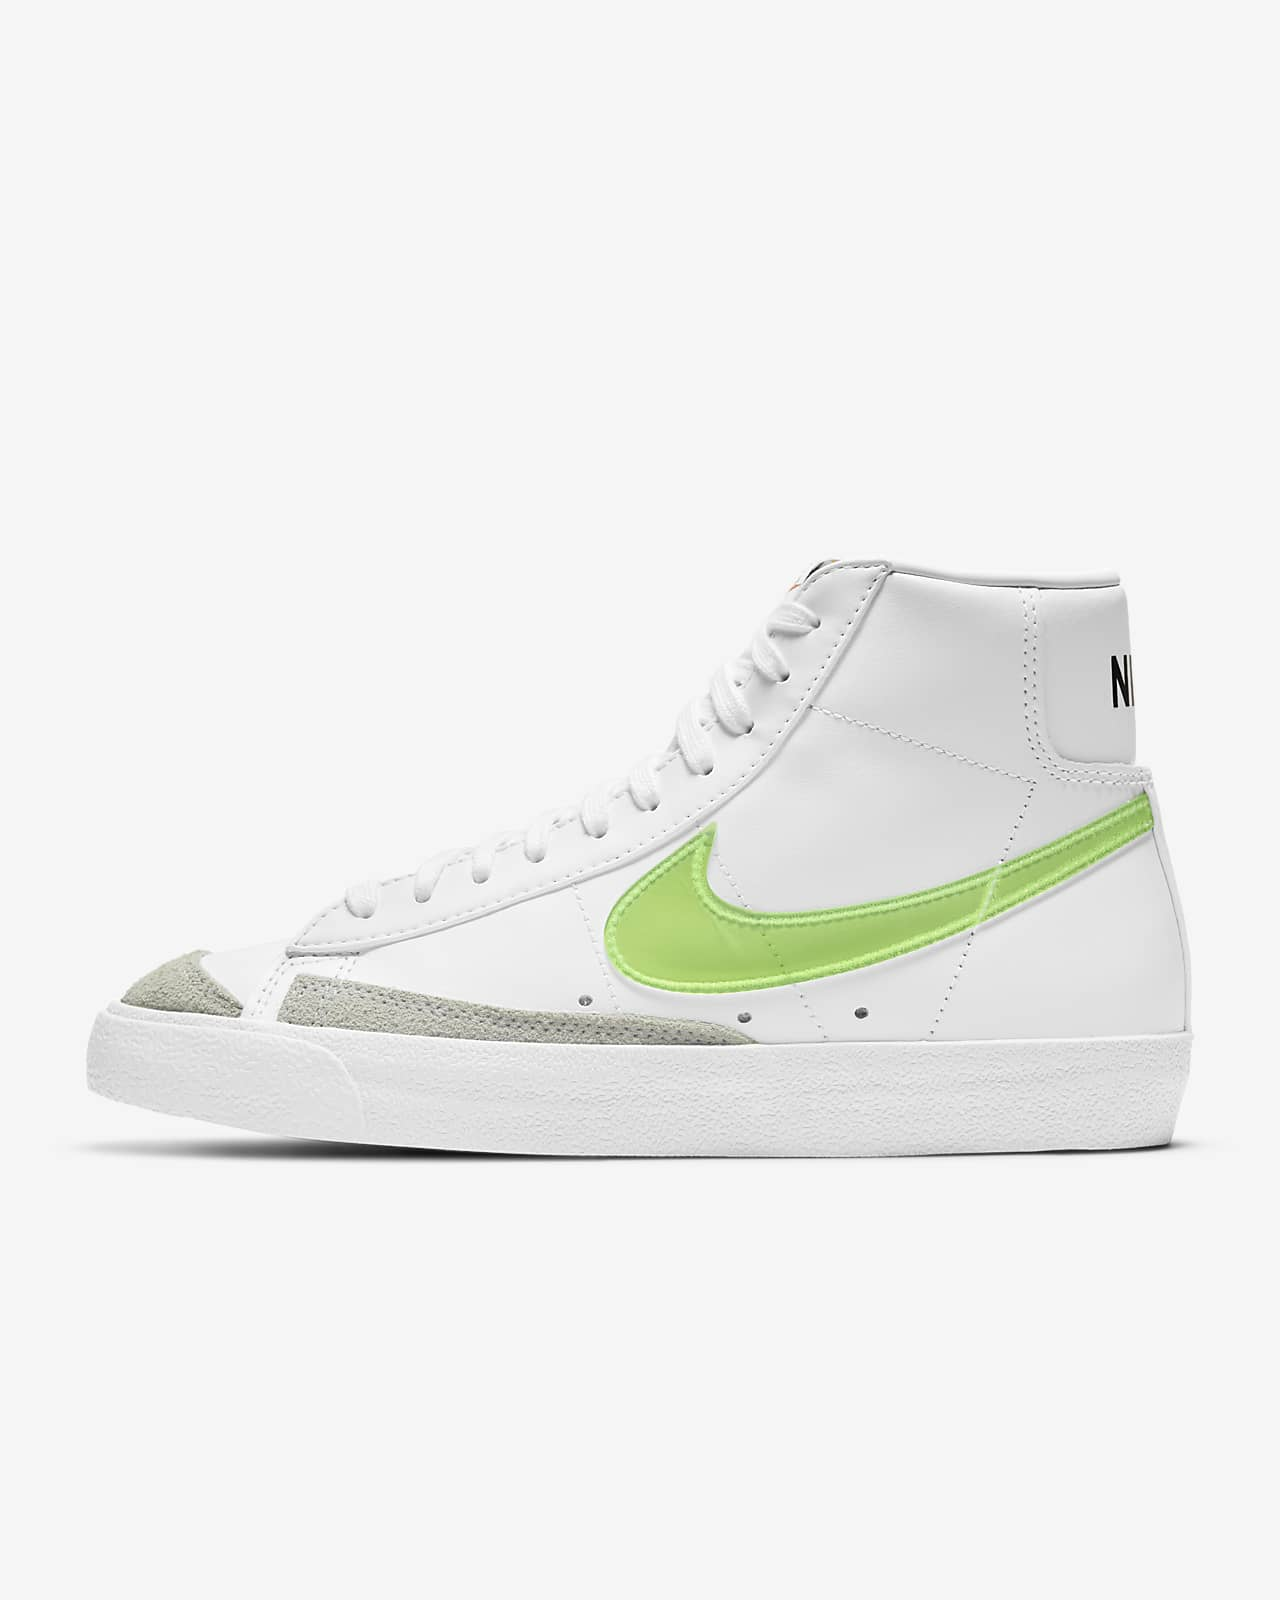 Nike Blazer Mid '77 Essential Women's Shoe